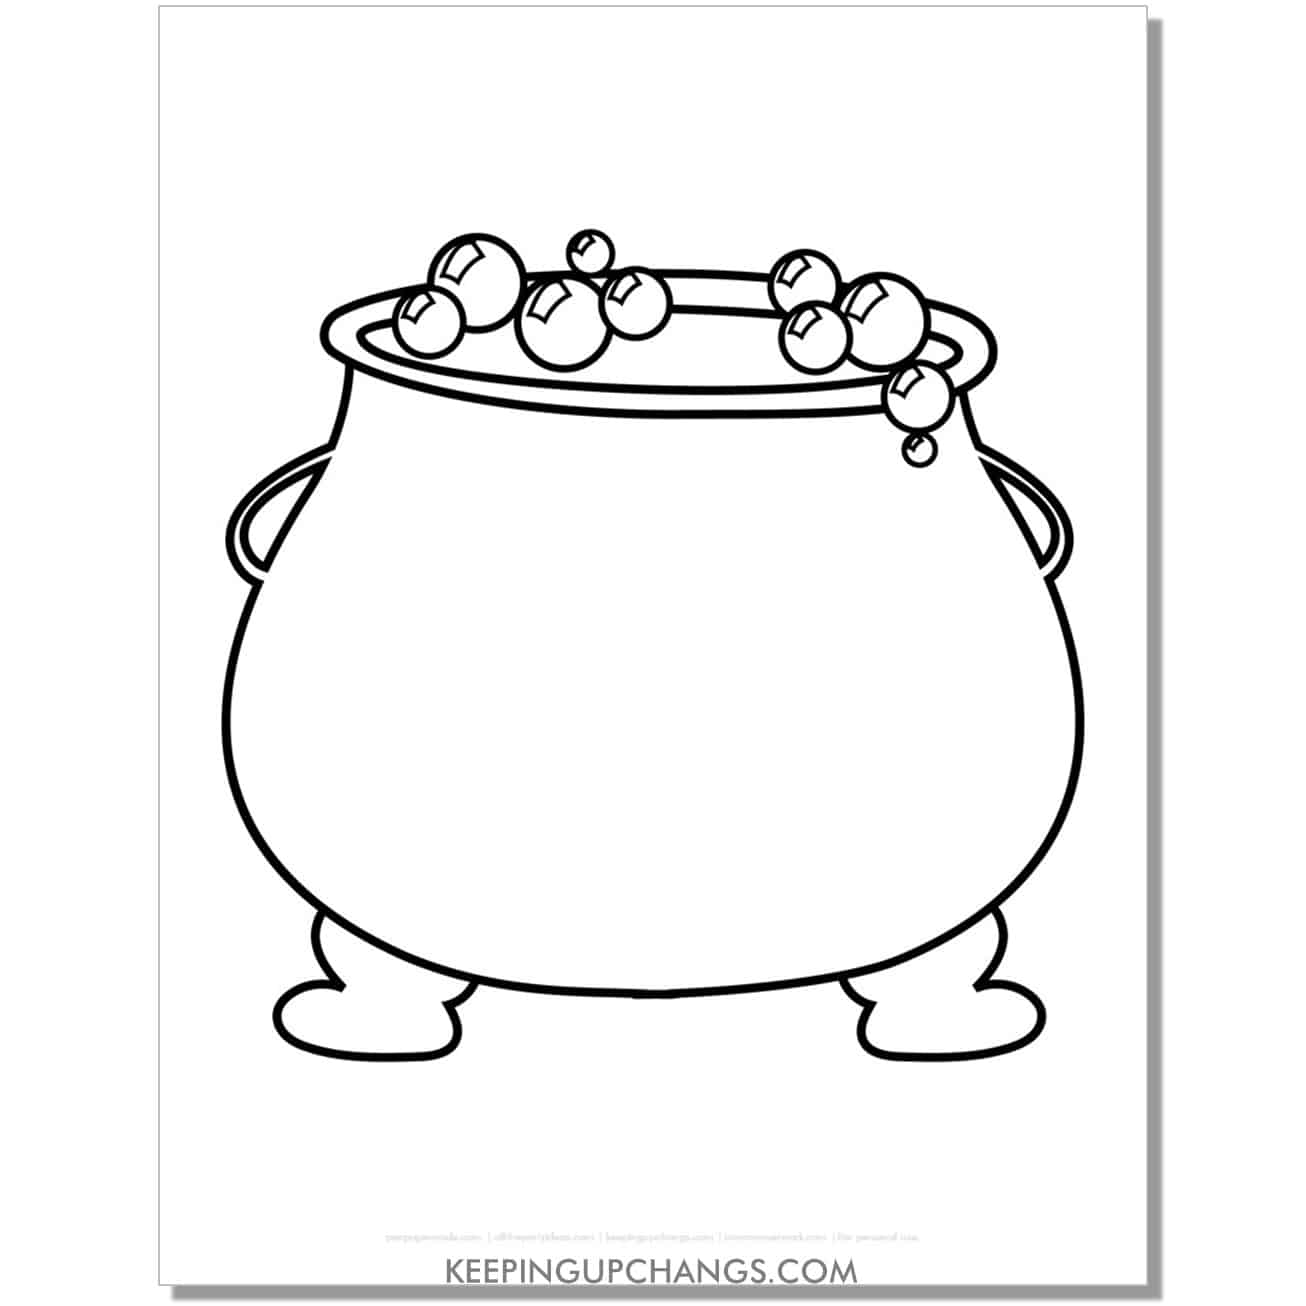 free witch cauldron halloween coloring page for toddlers.